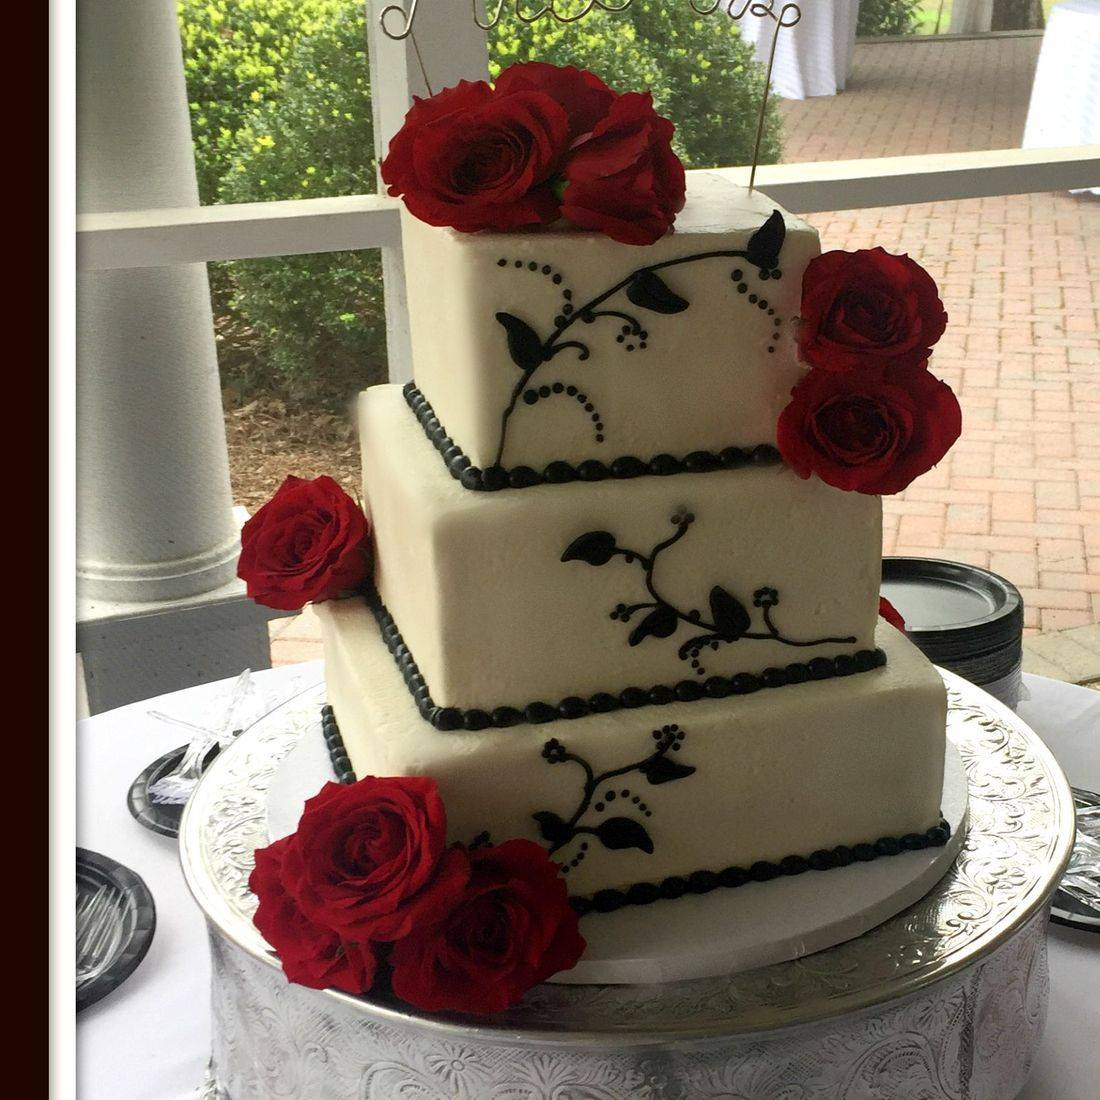 Buttercream Wedding Cake black scrolls red roses